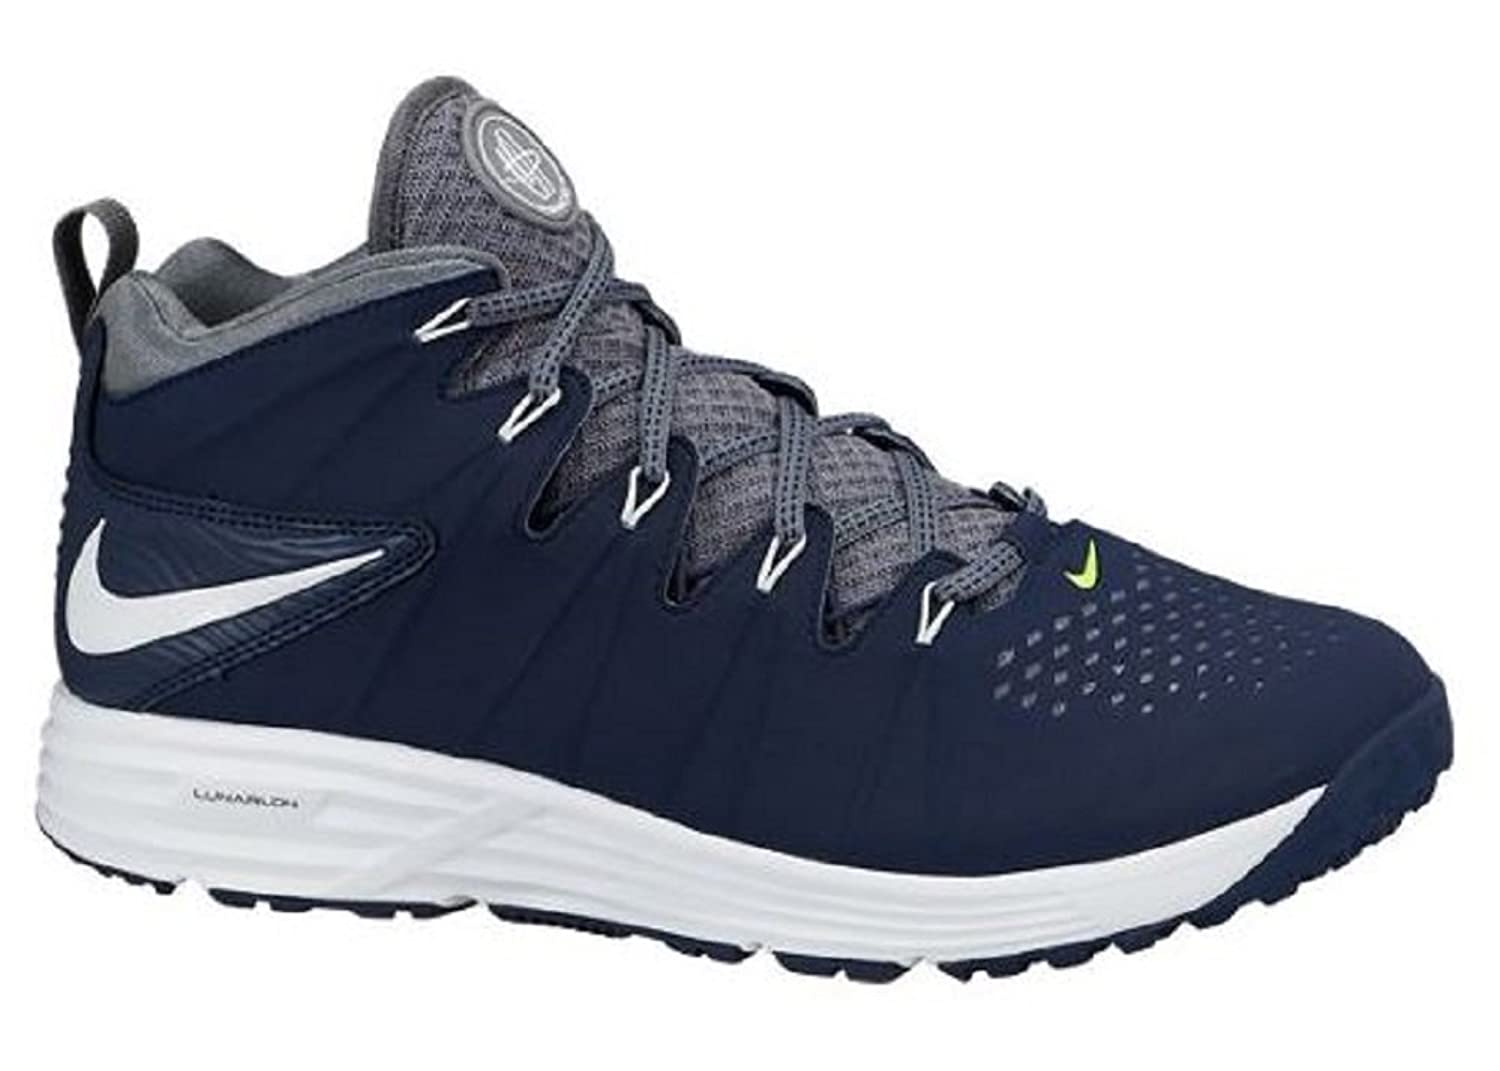 Nike メンズ B00PKK6CA2College Navy/White/Cool Grey 10.5 M US